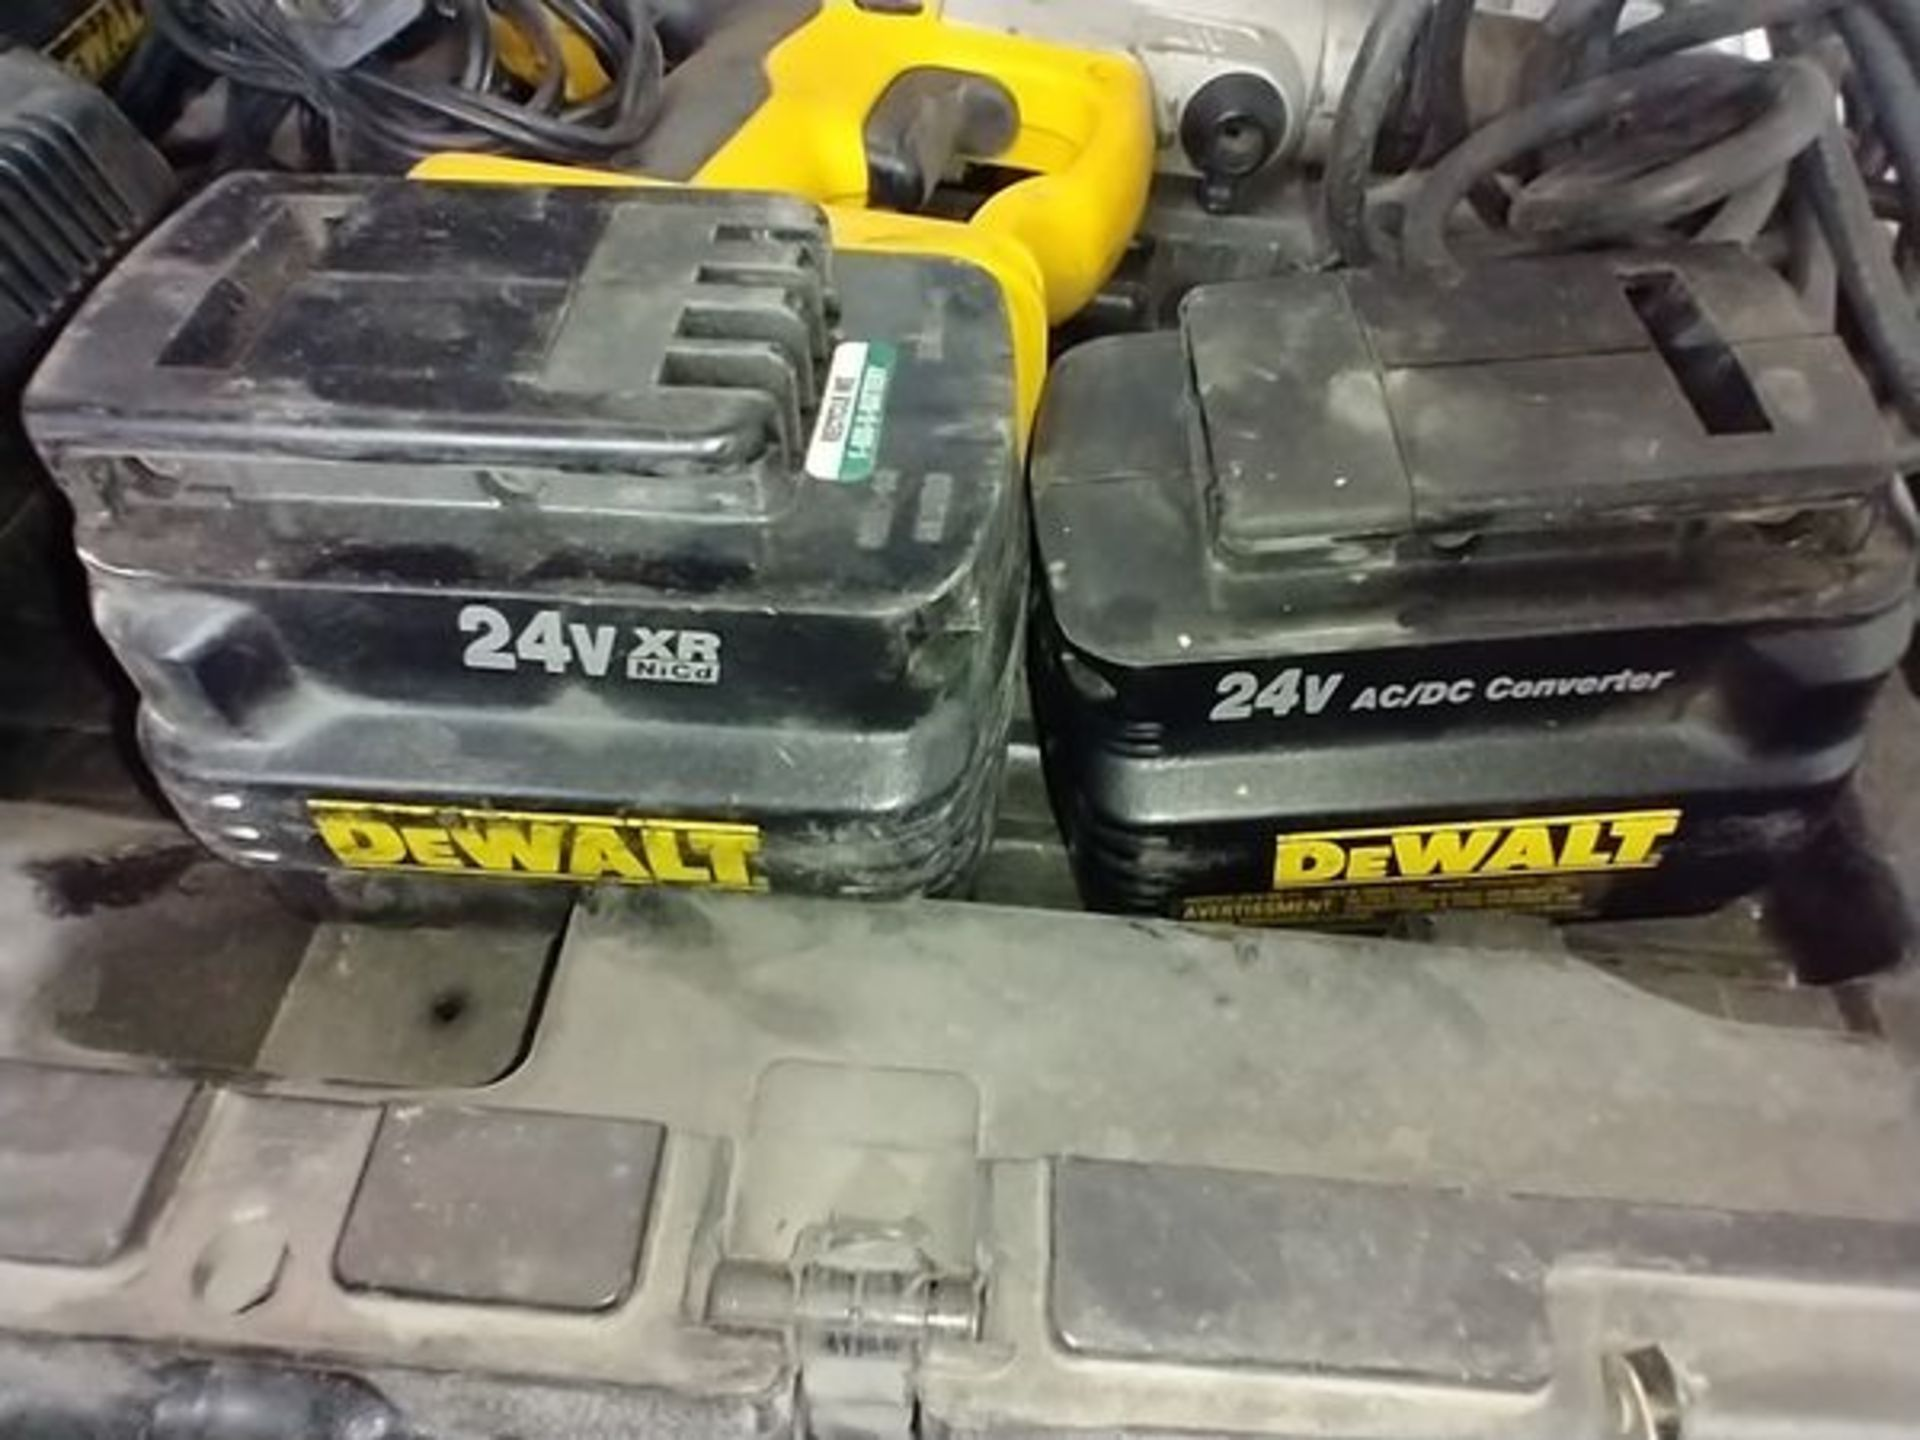 DEWALT DW006 24V HAMMER DRILL WITH 2 BATTERIES AND AC ADAPTER - Image 4 of 5